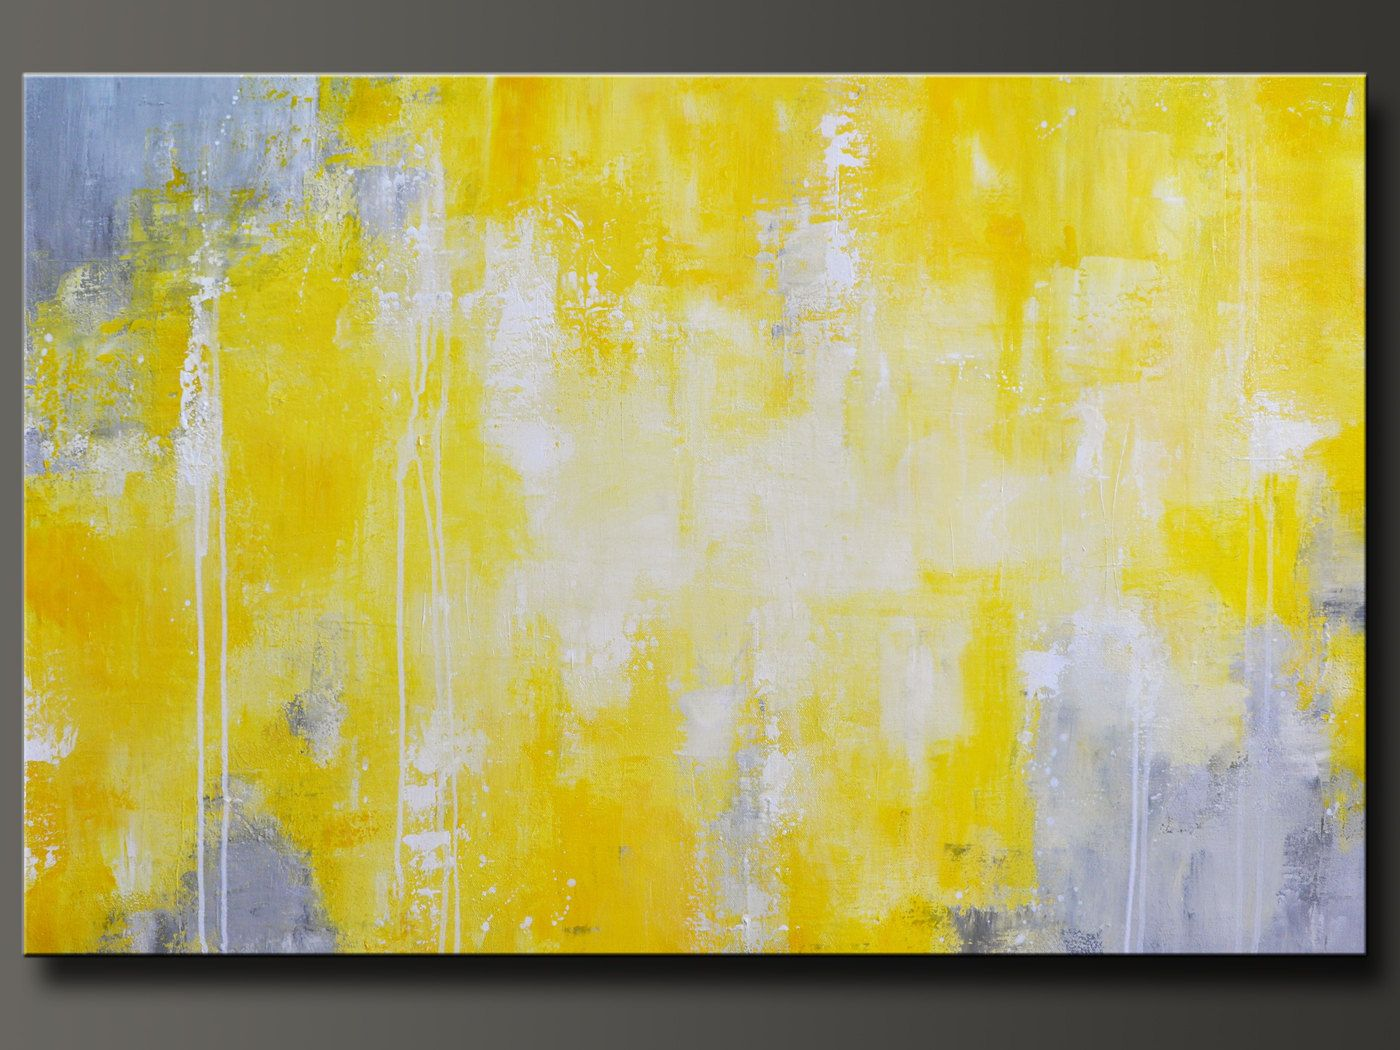 Abstract in Yellow 12 - 36 x 24 - Abstract Acrylic Painting ...